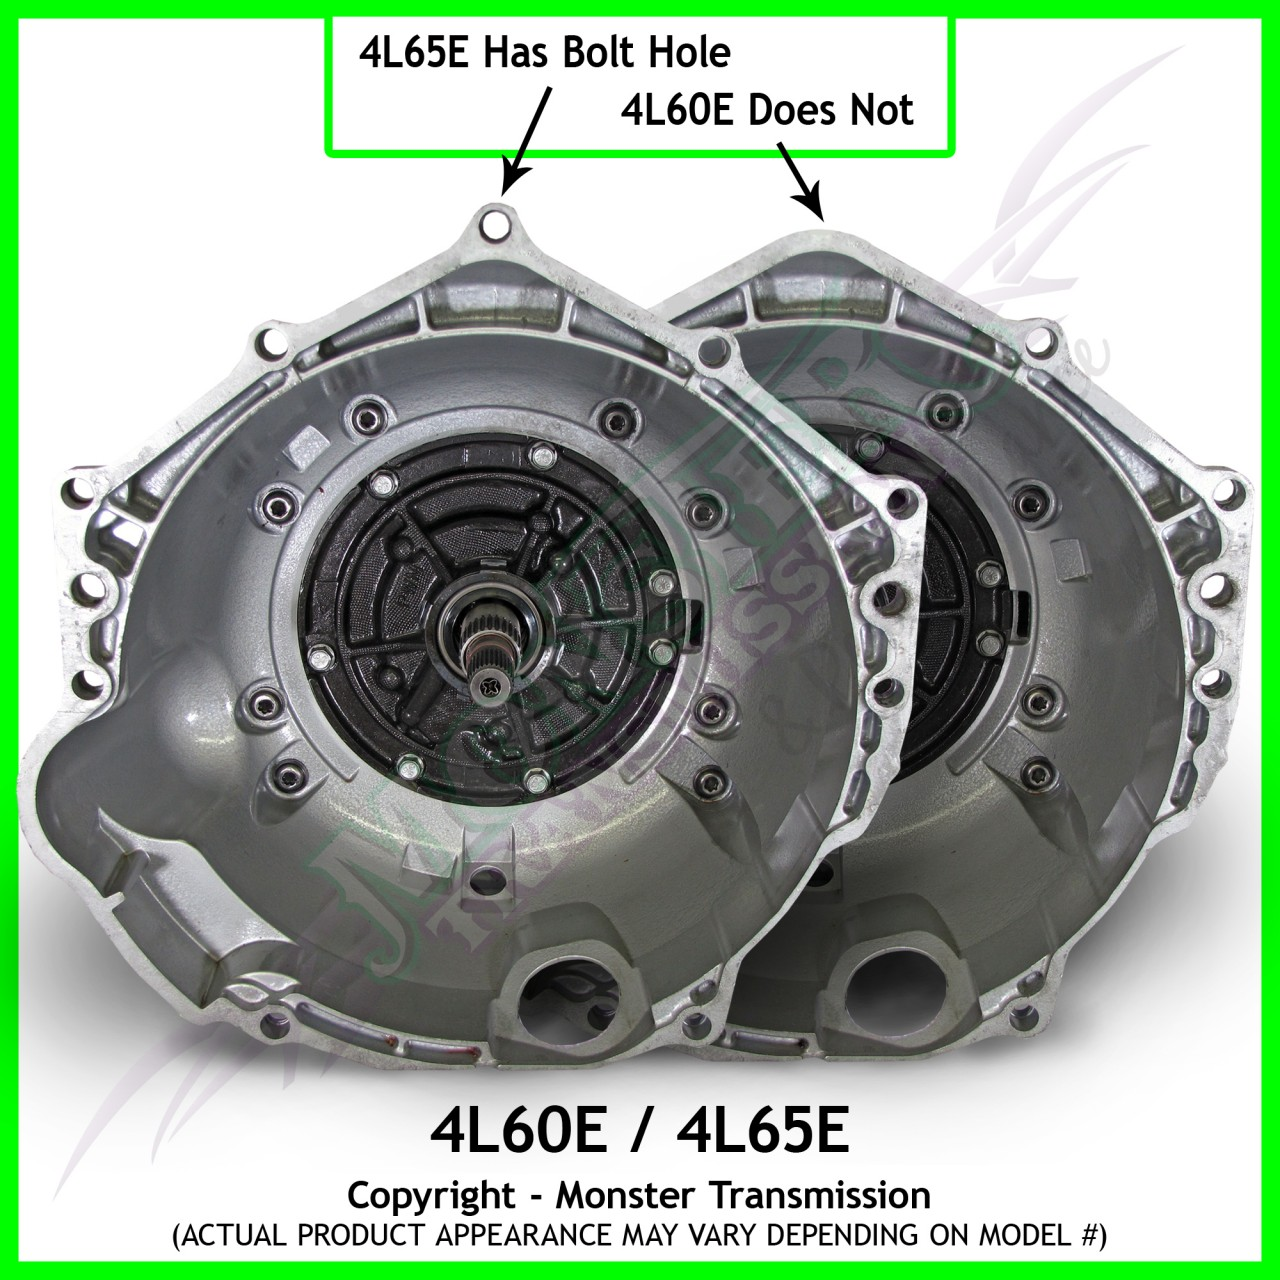 Ford Engines For Sale >> 4L60E 4L65E Transmission Remanufactured Mild 4.8 5.3 LS1 6.0L 2WD, 4L65E transmission, 4L65e ...